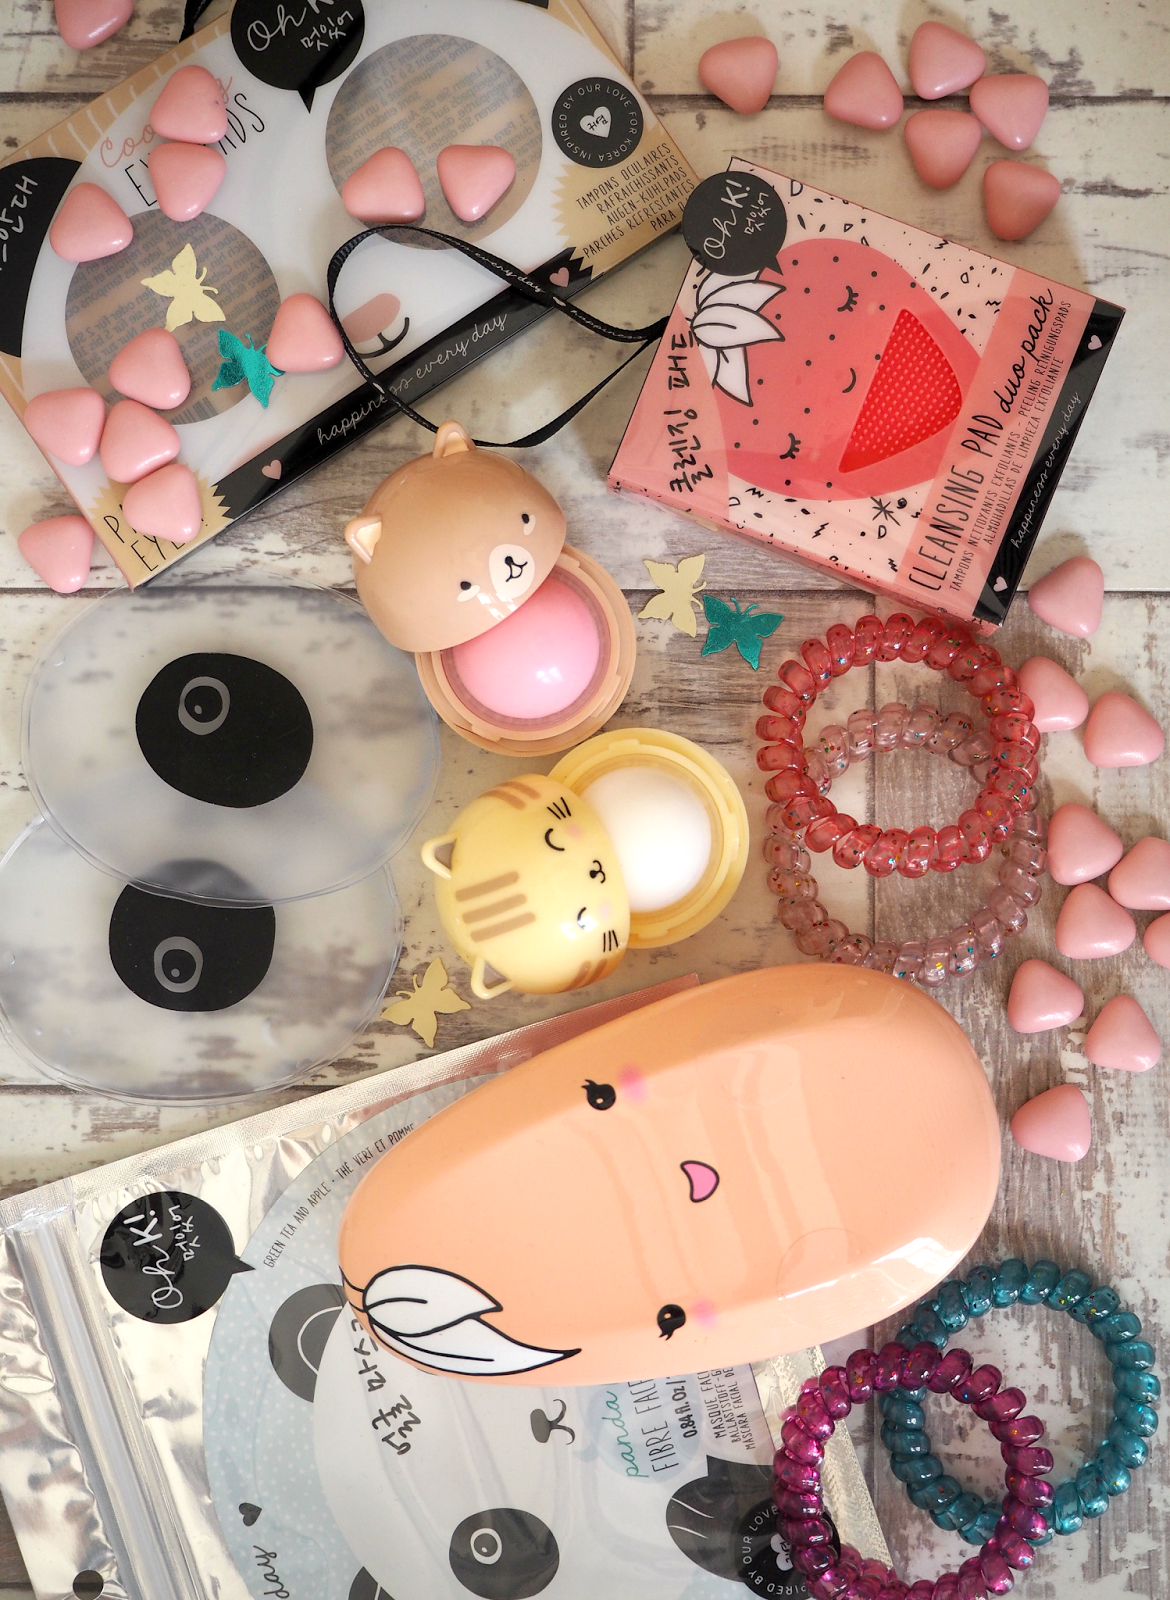 Korean Kitsch For Lovers Of Cute Things New Brand 'Oh K